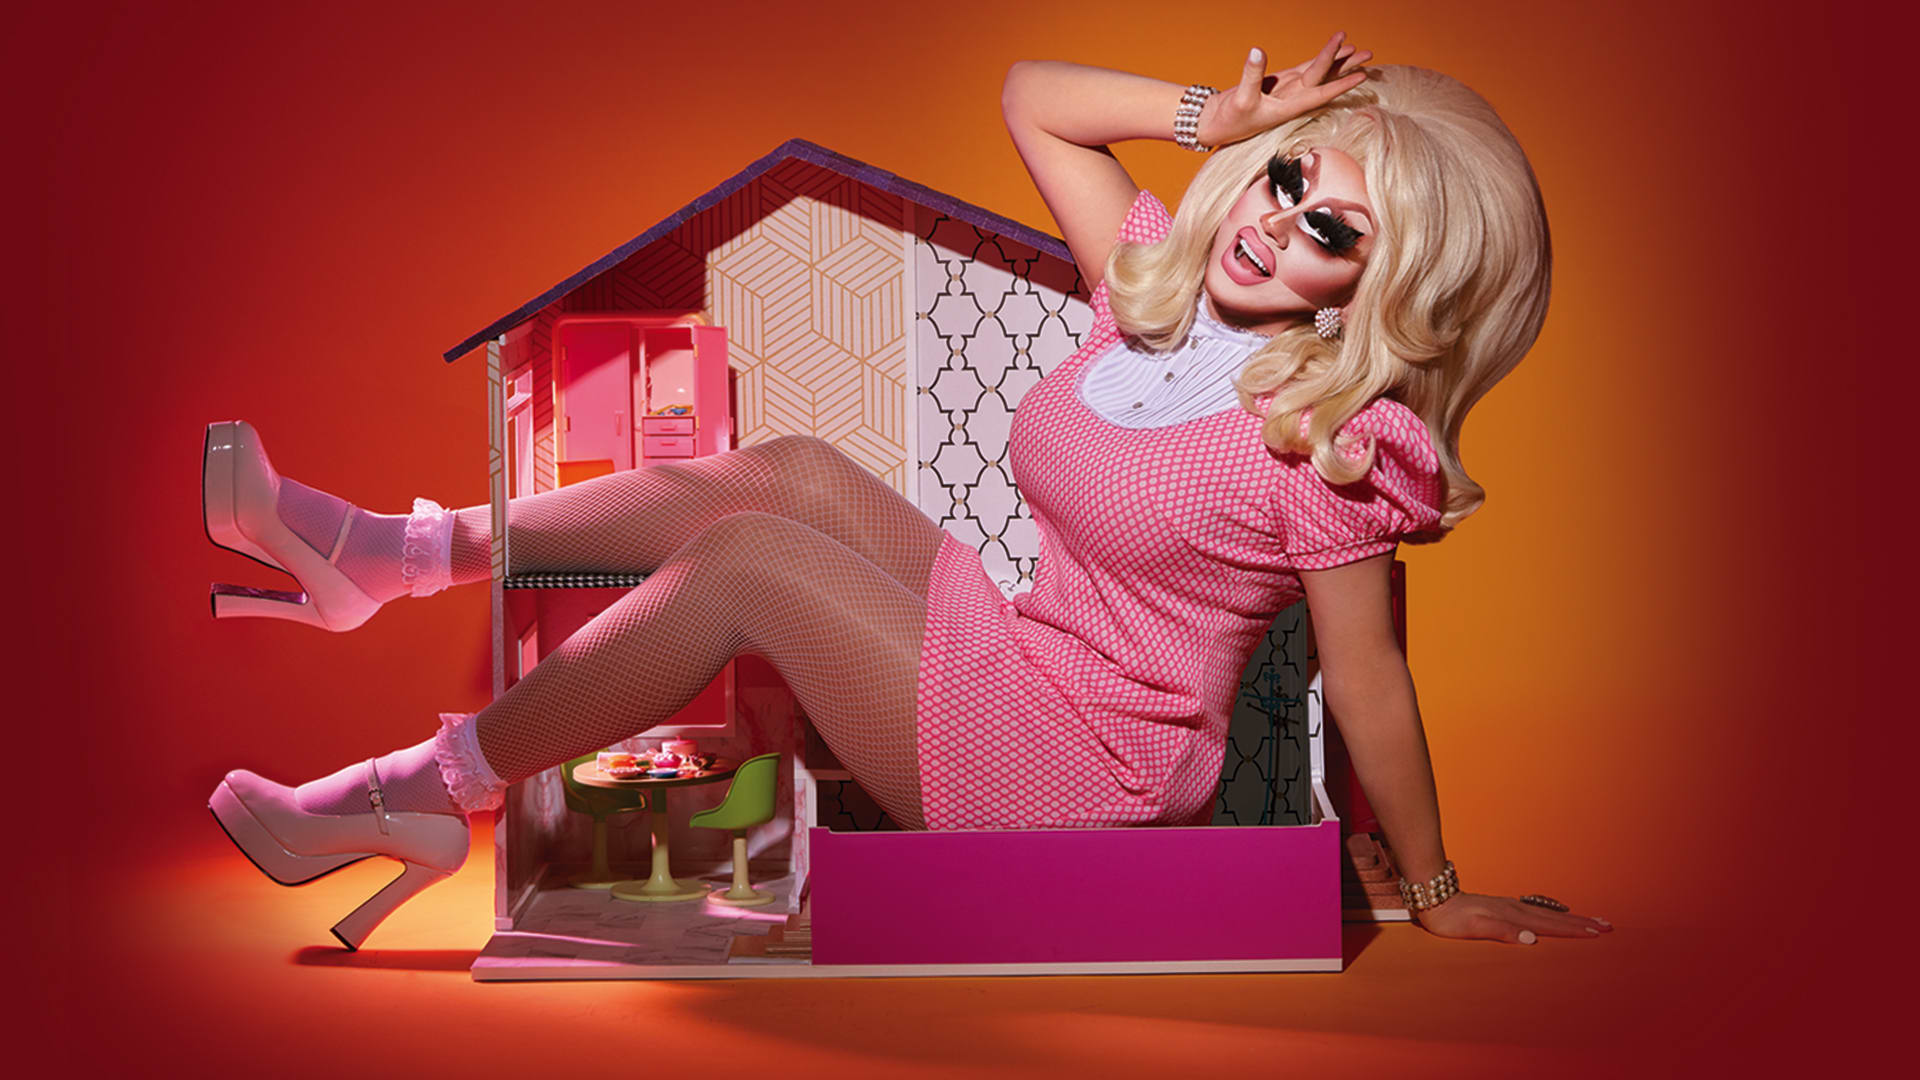 Trixie Mattel: Grown Up Prod Shot